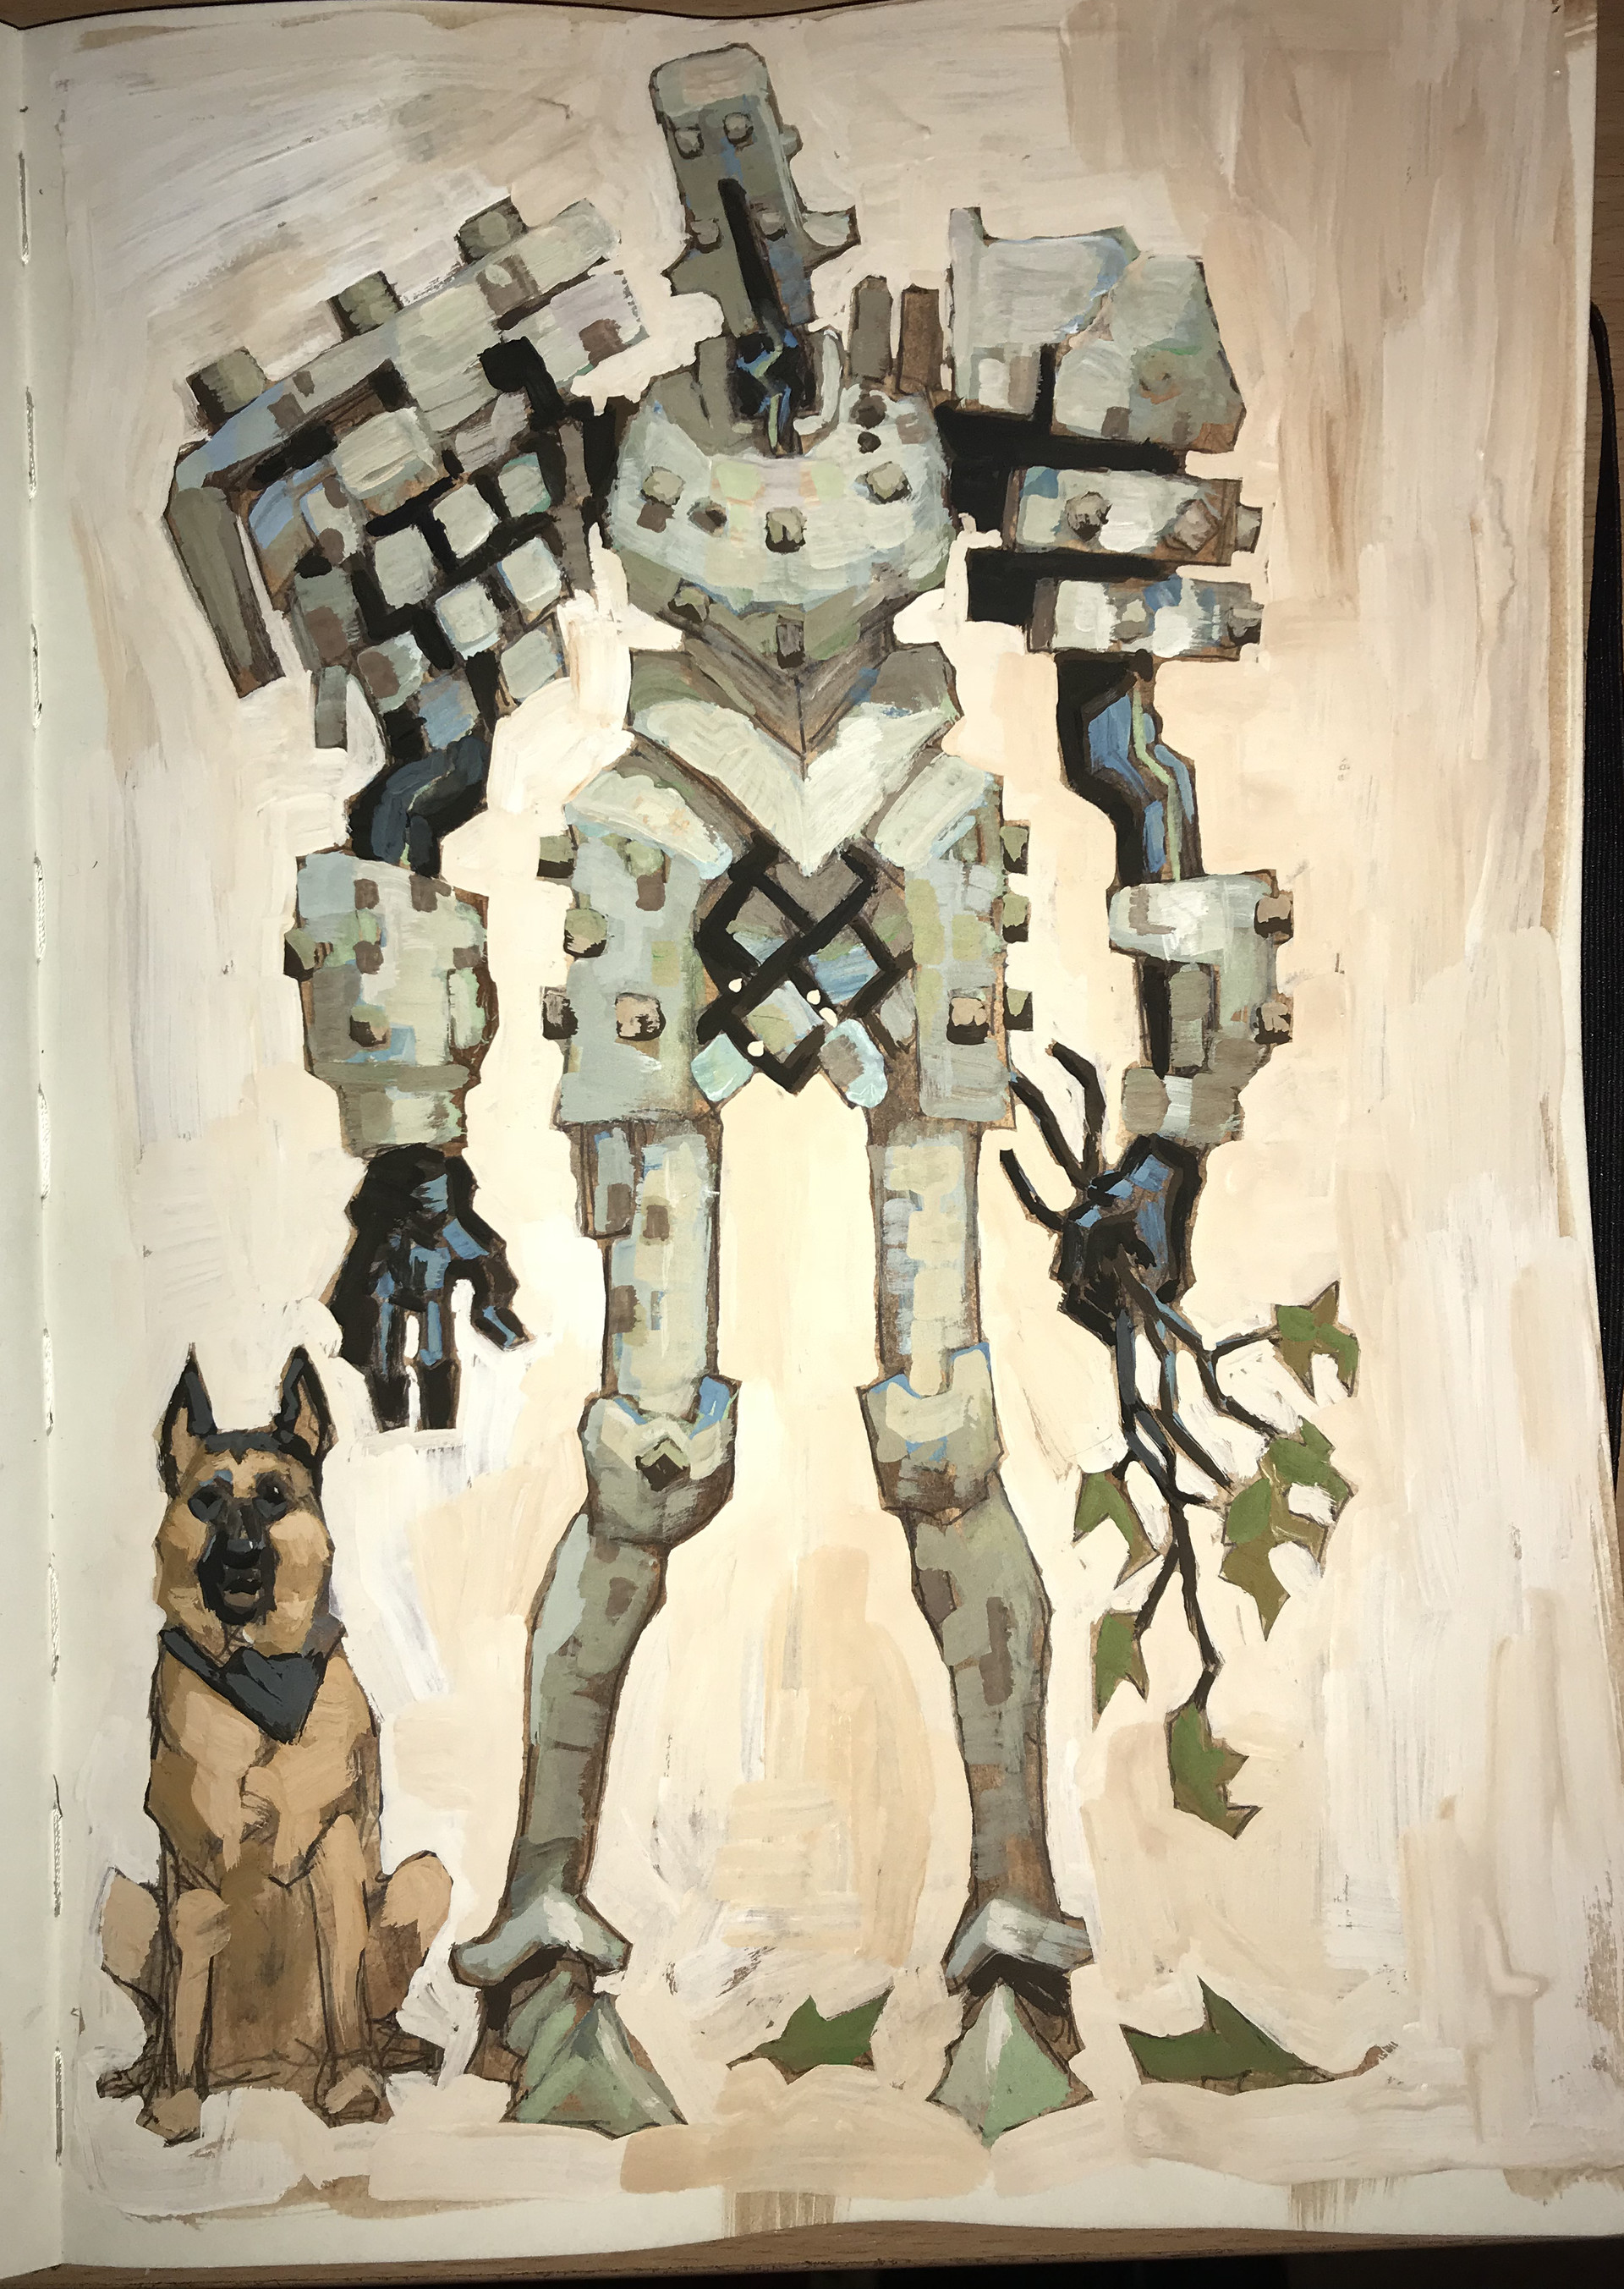 Edward delandre robot and doggo